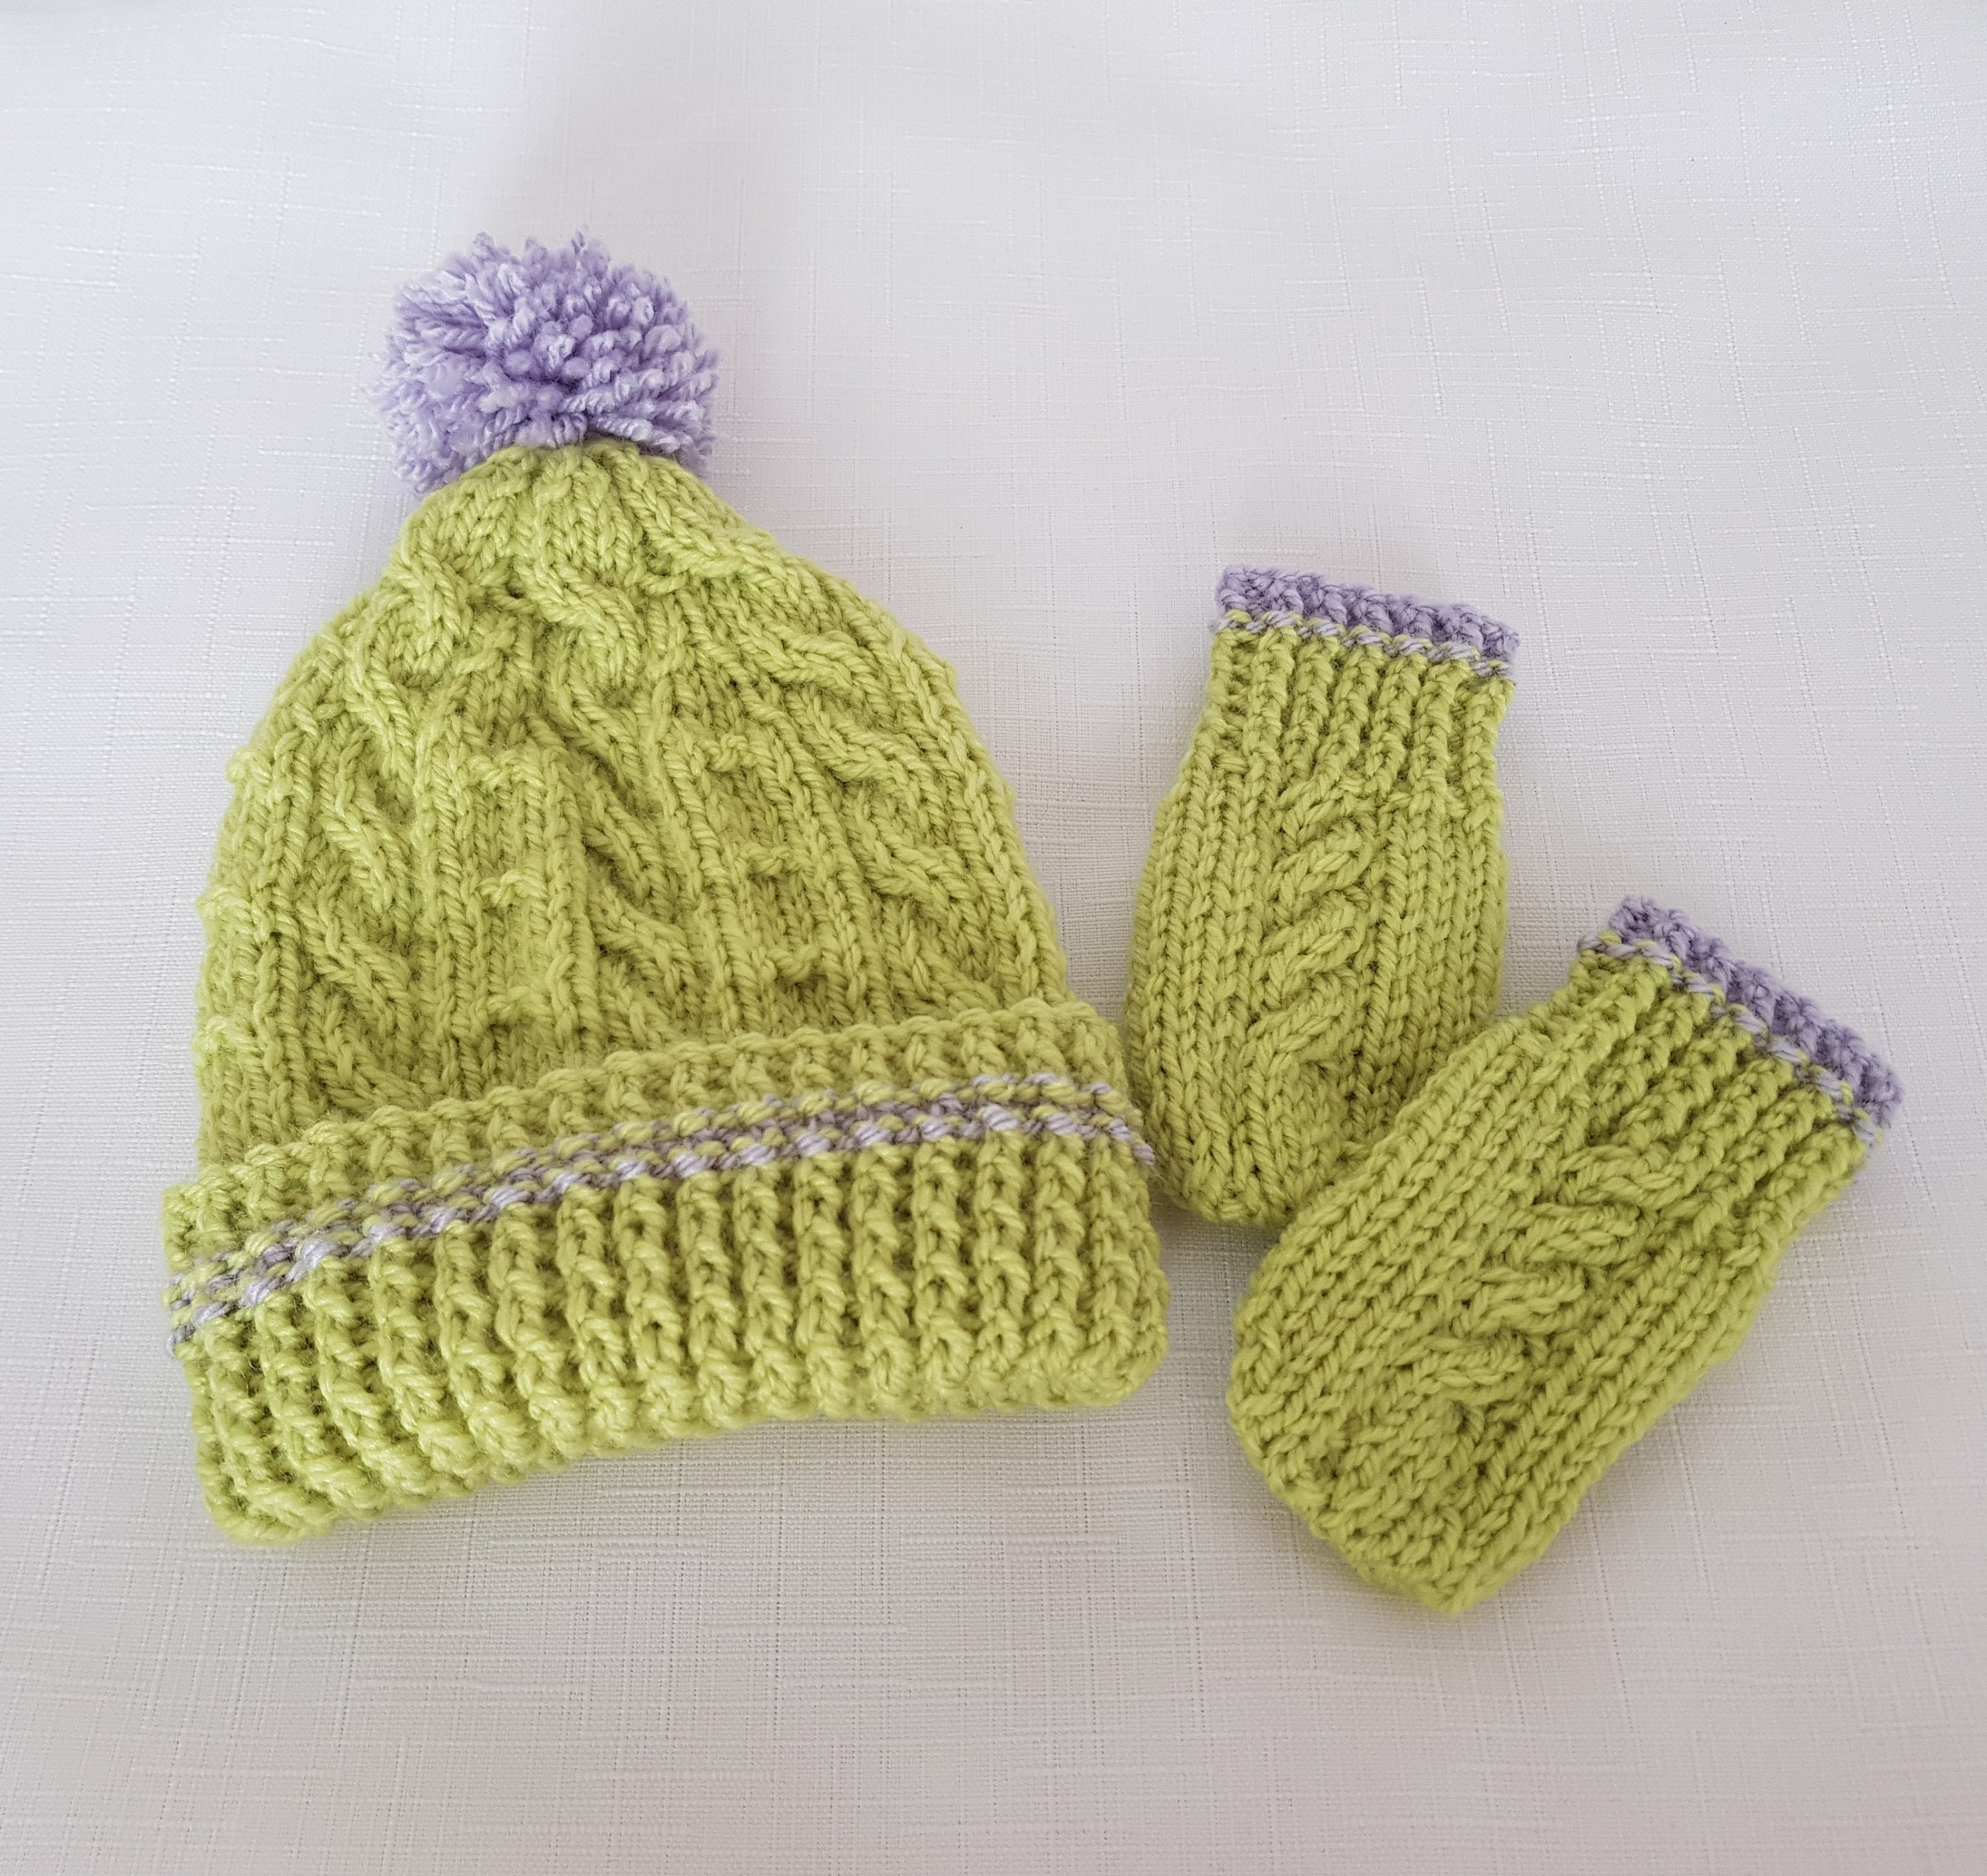 Baby Knitted Hat   Mittens Handmade Baby Boys Gift  887faed6e206